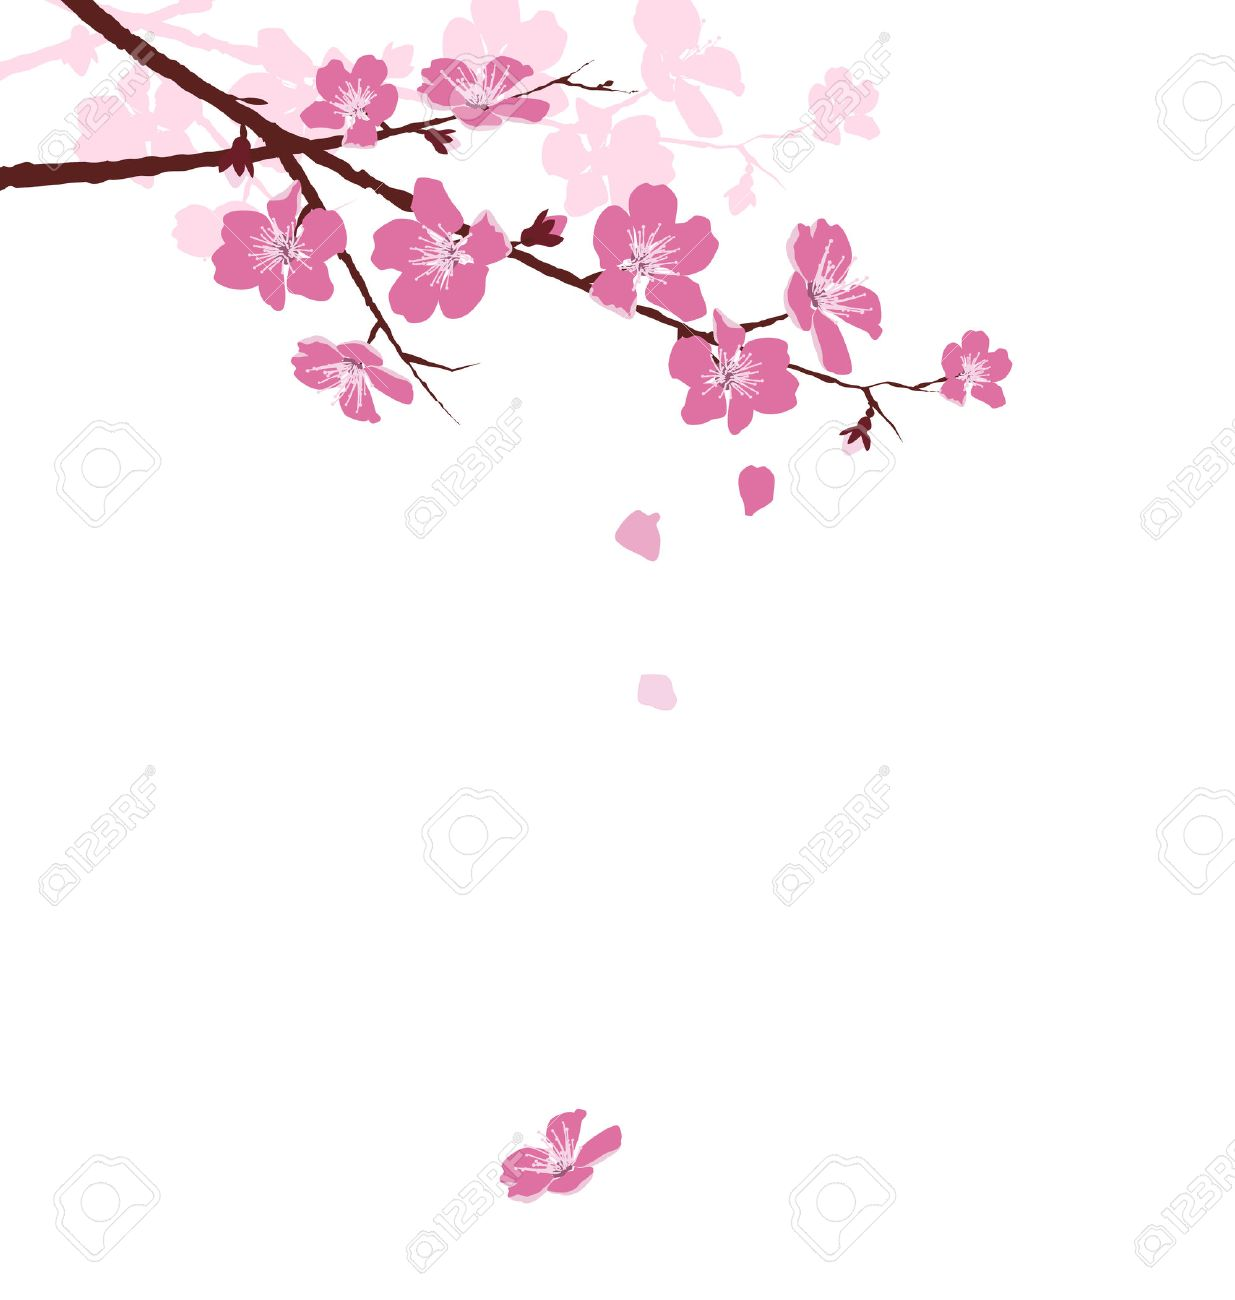 Cherry branch with flowers isolated on white background - 37832824